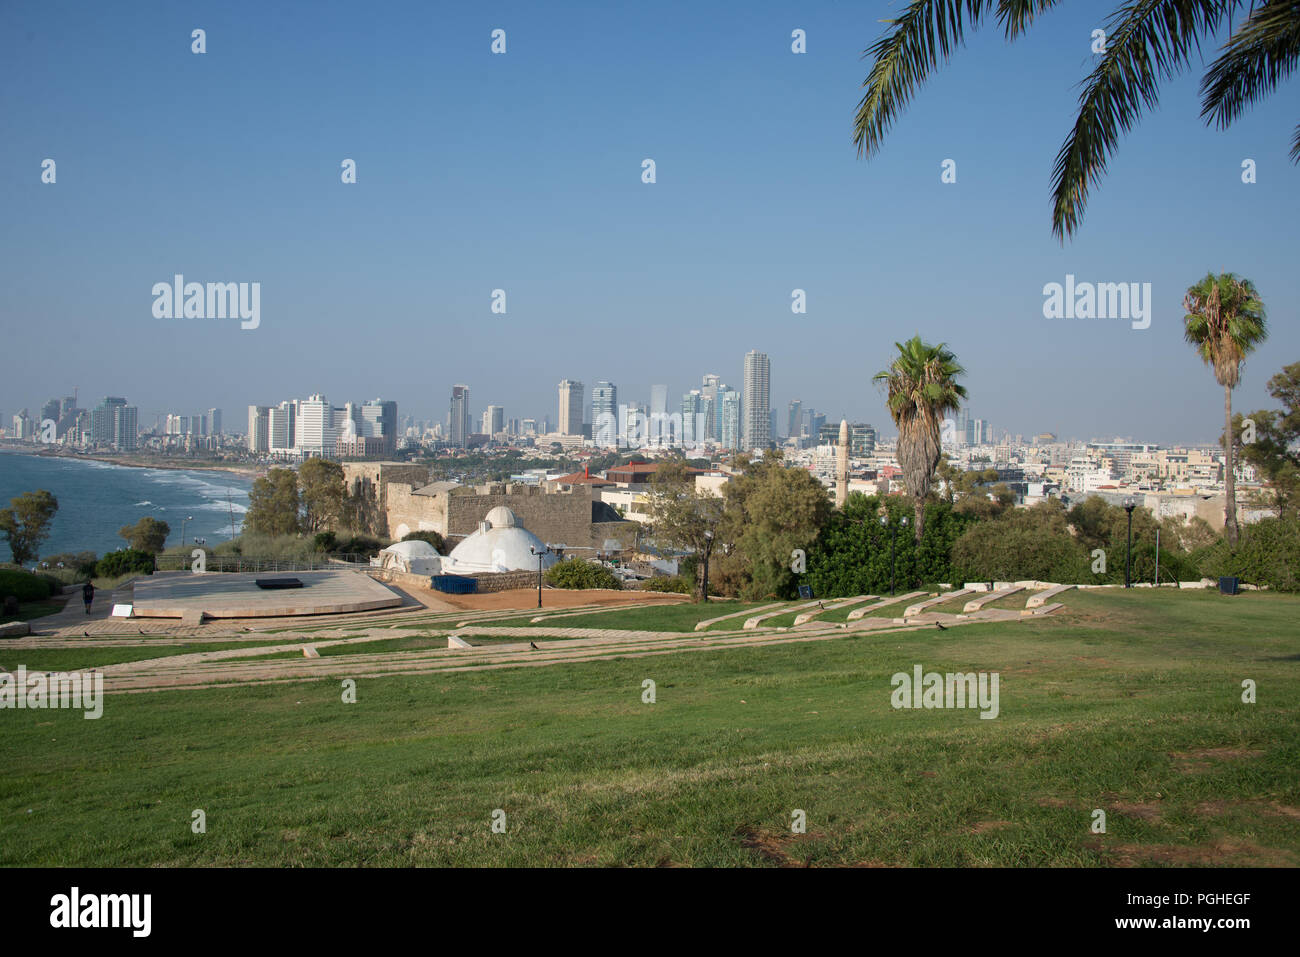 Amphitheater in Jaffa, Israel - Stock Image